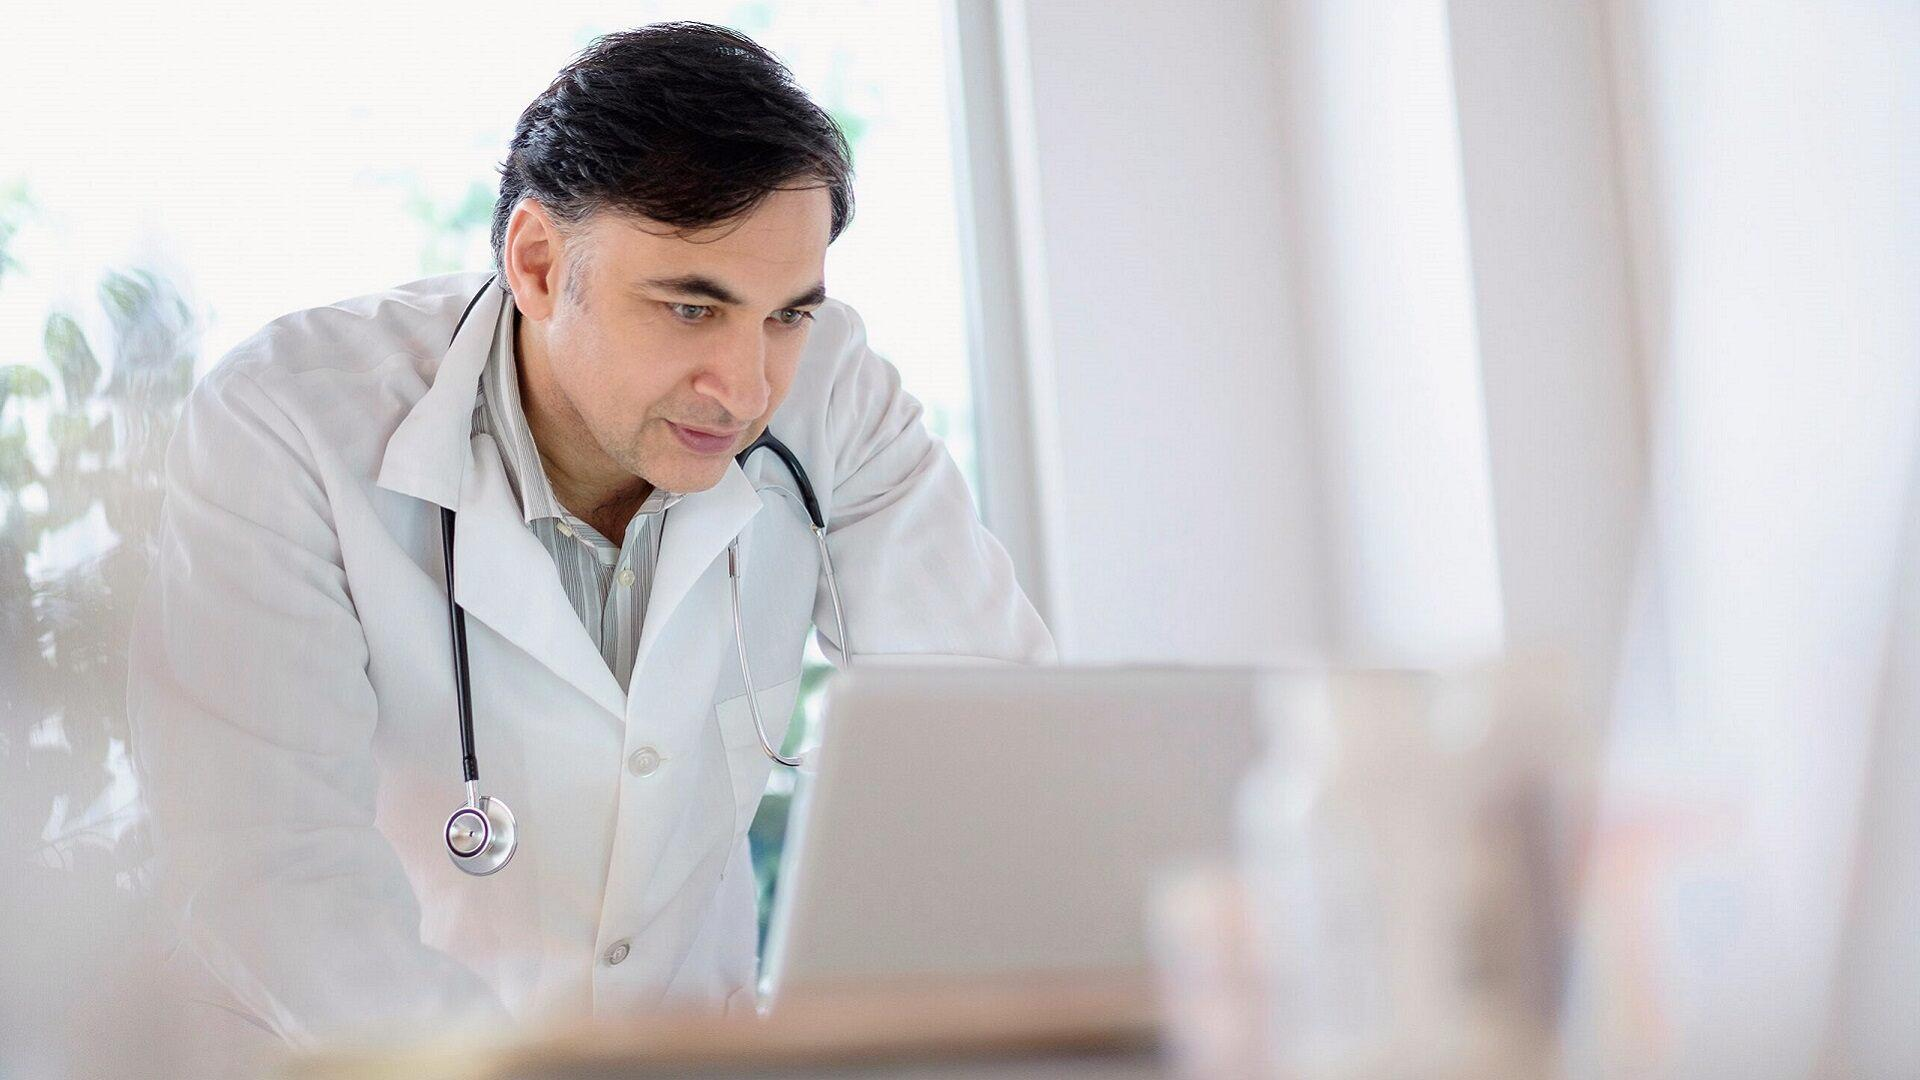 doctor is looking at a laptop screen